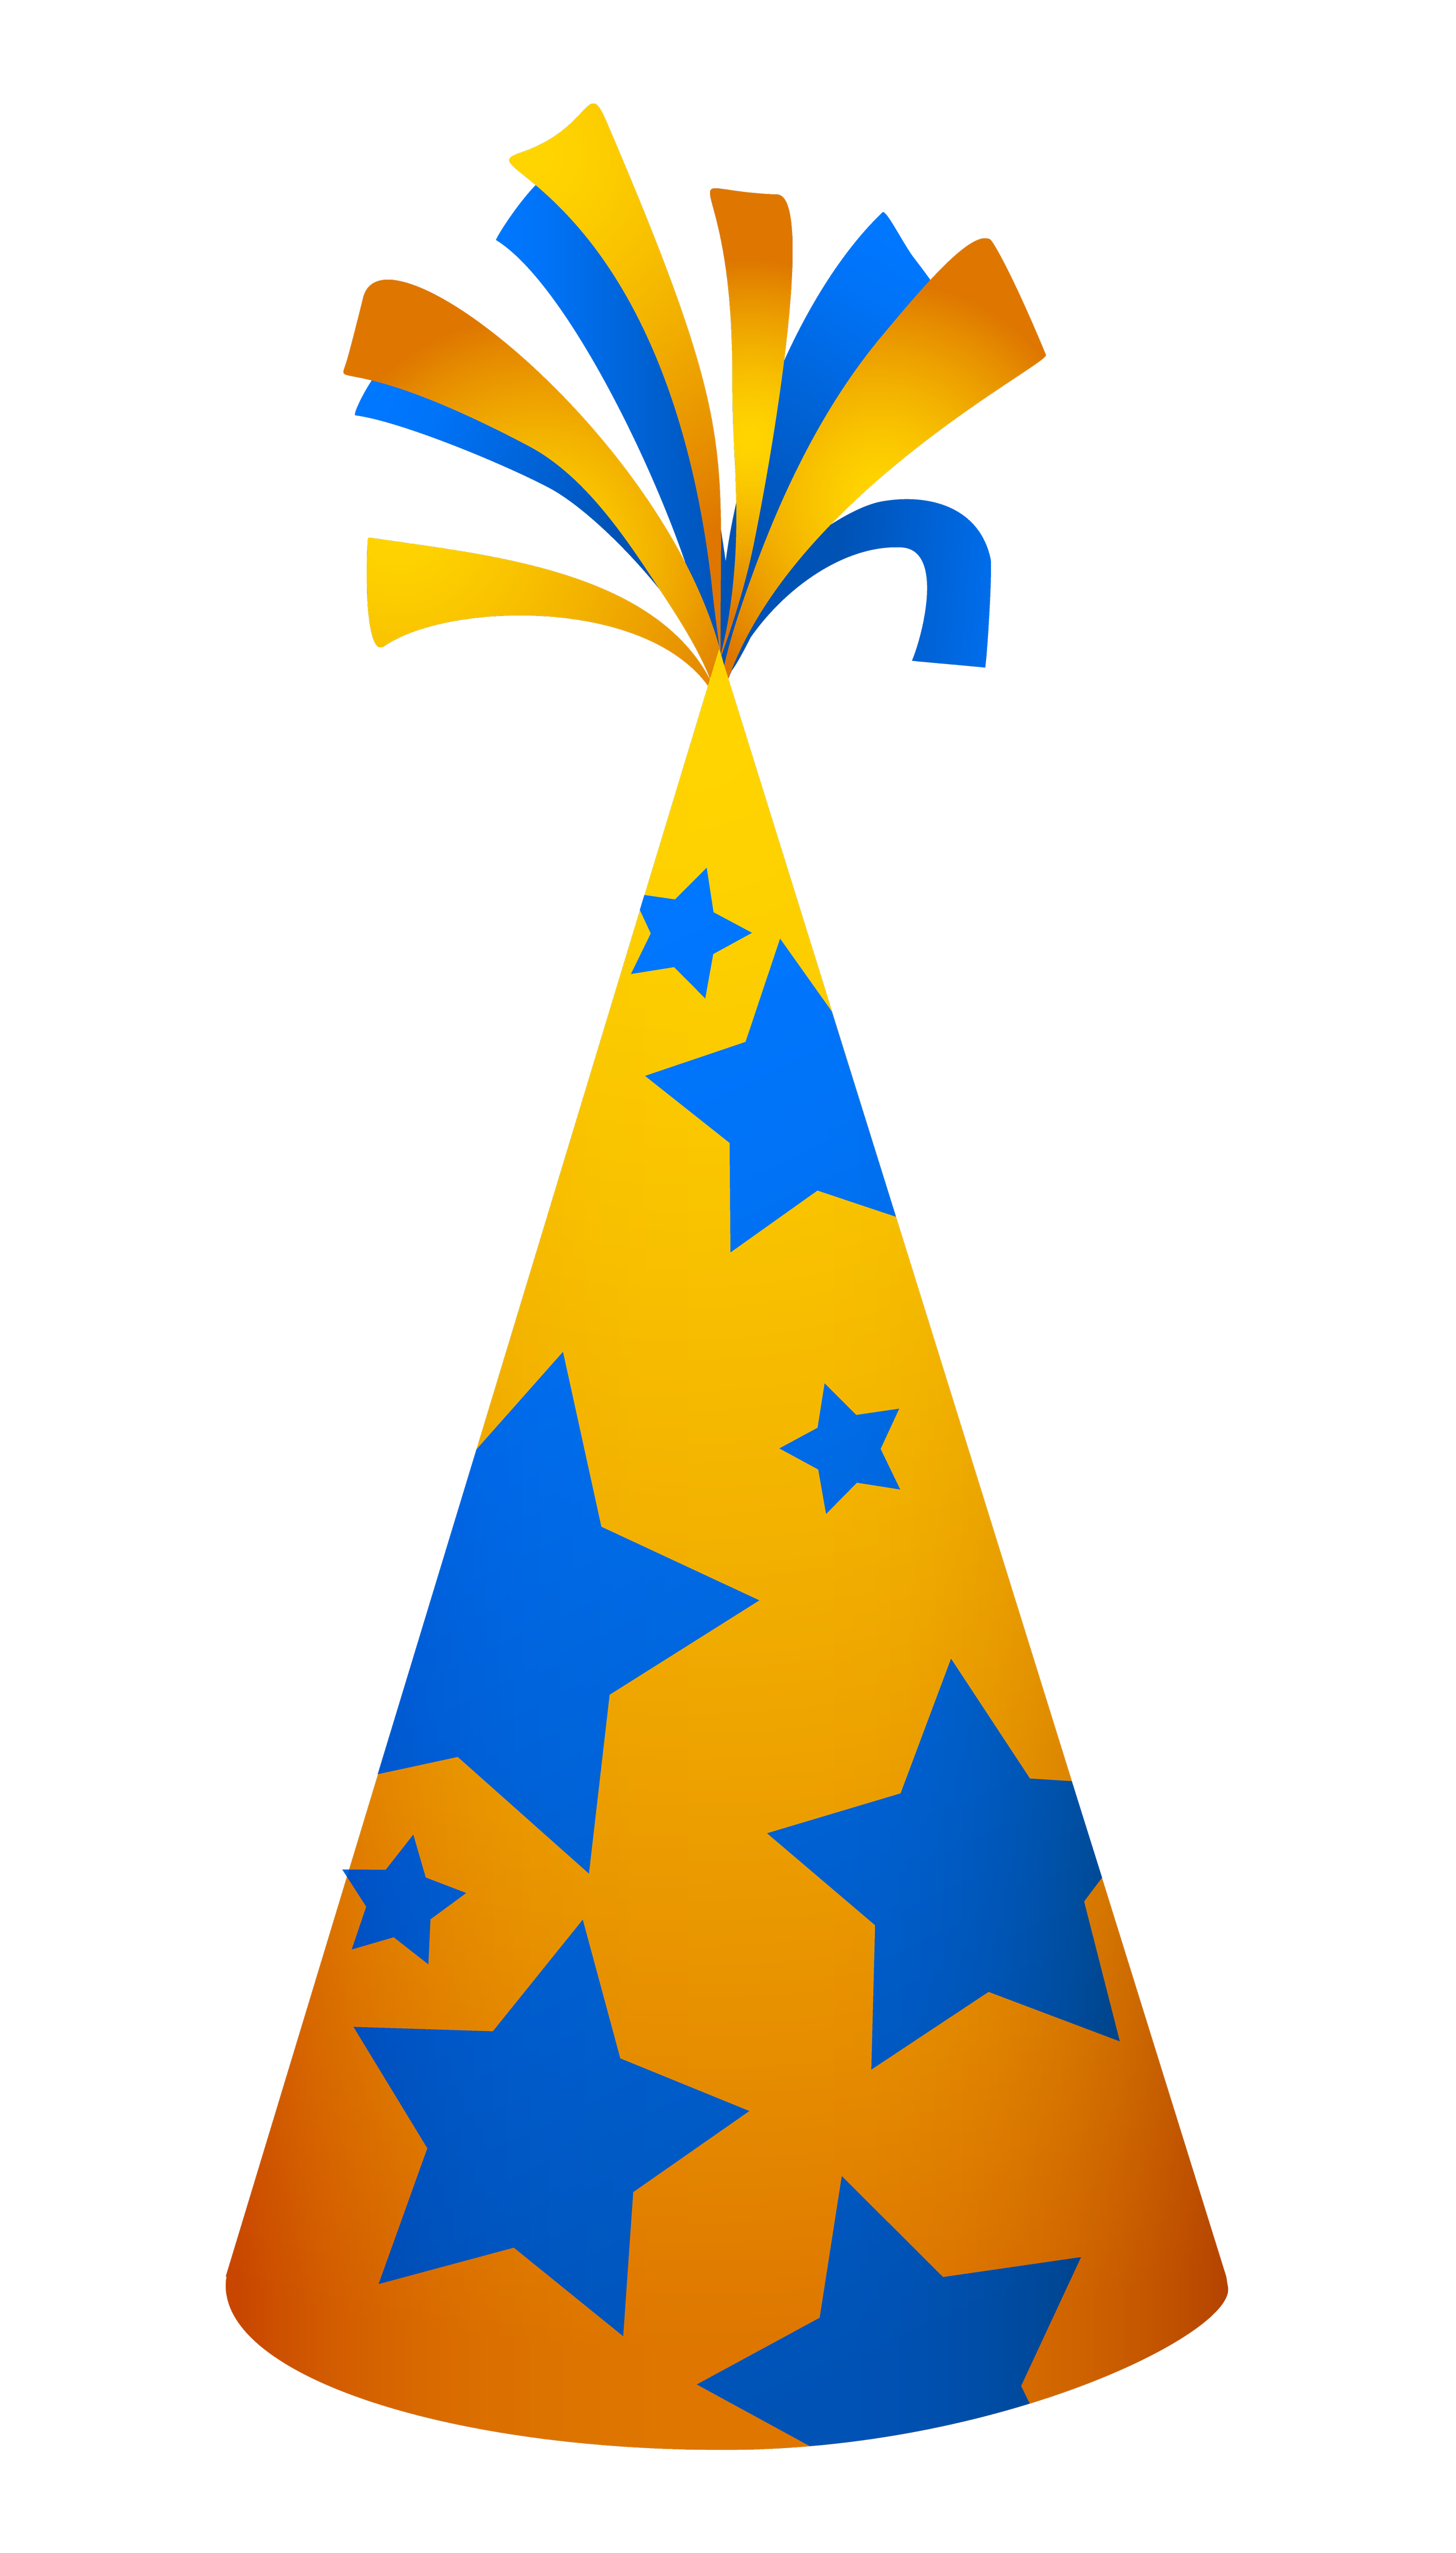 Birthday hat png. Download free transparent image